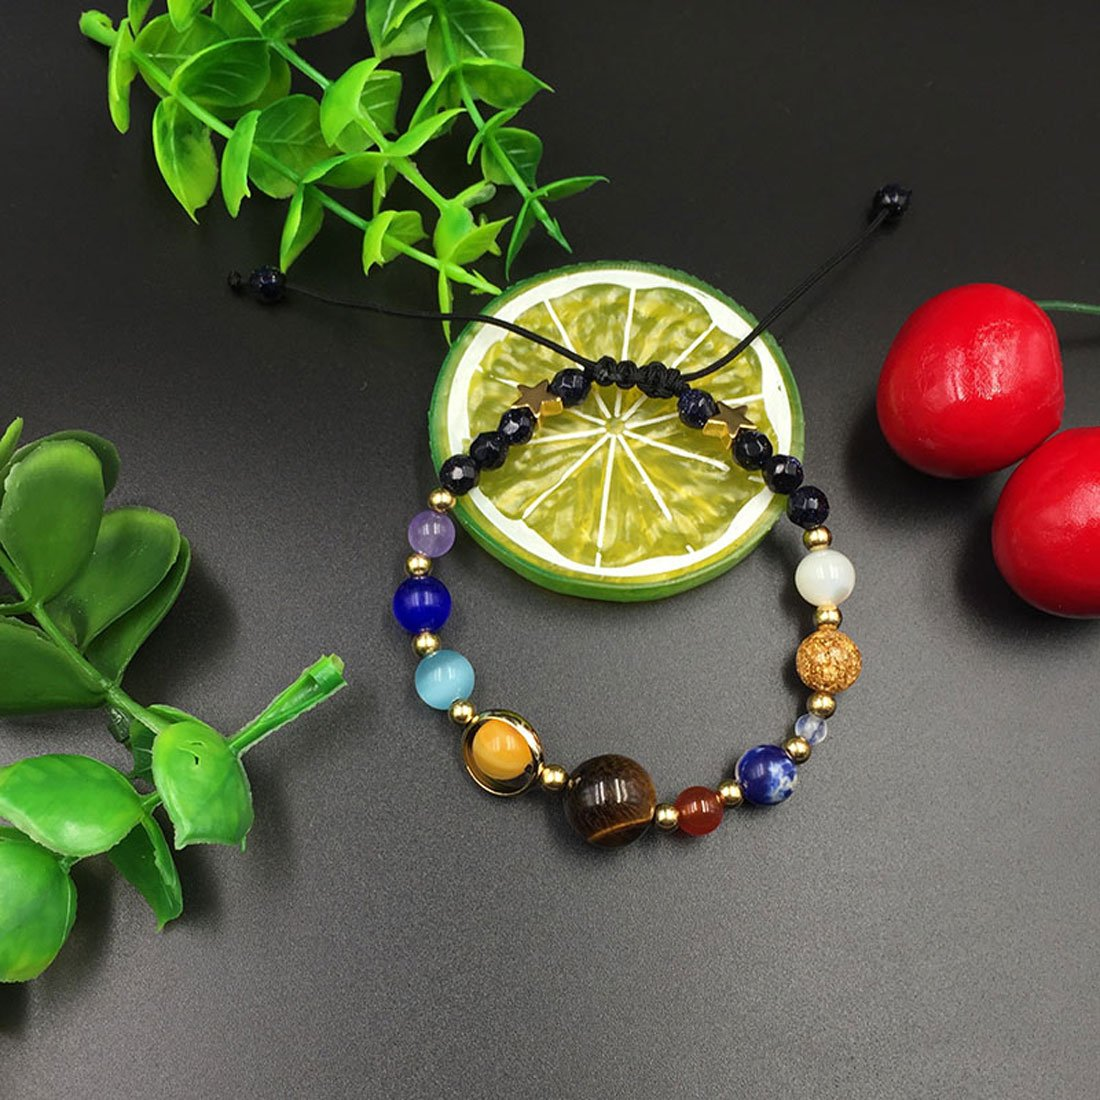 sdsruioo Unisex Handmade Solar System Bracelet Universe Galaxy The Nine Planets Guardian Star Natural Stone Beads Bracelets Bangles for Women and Men Gift FX-1Z82-7SS3